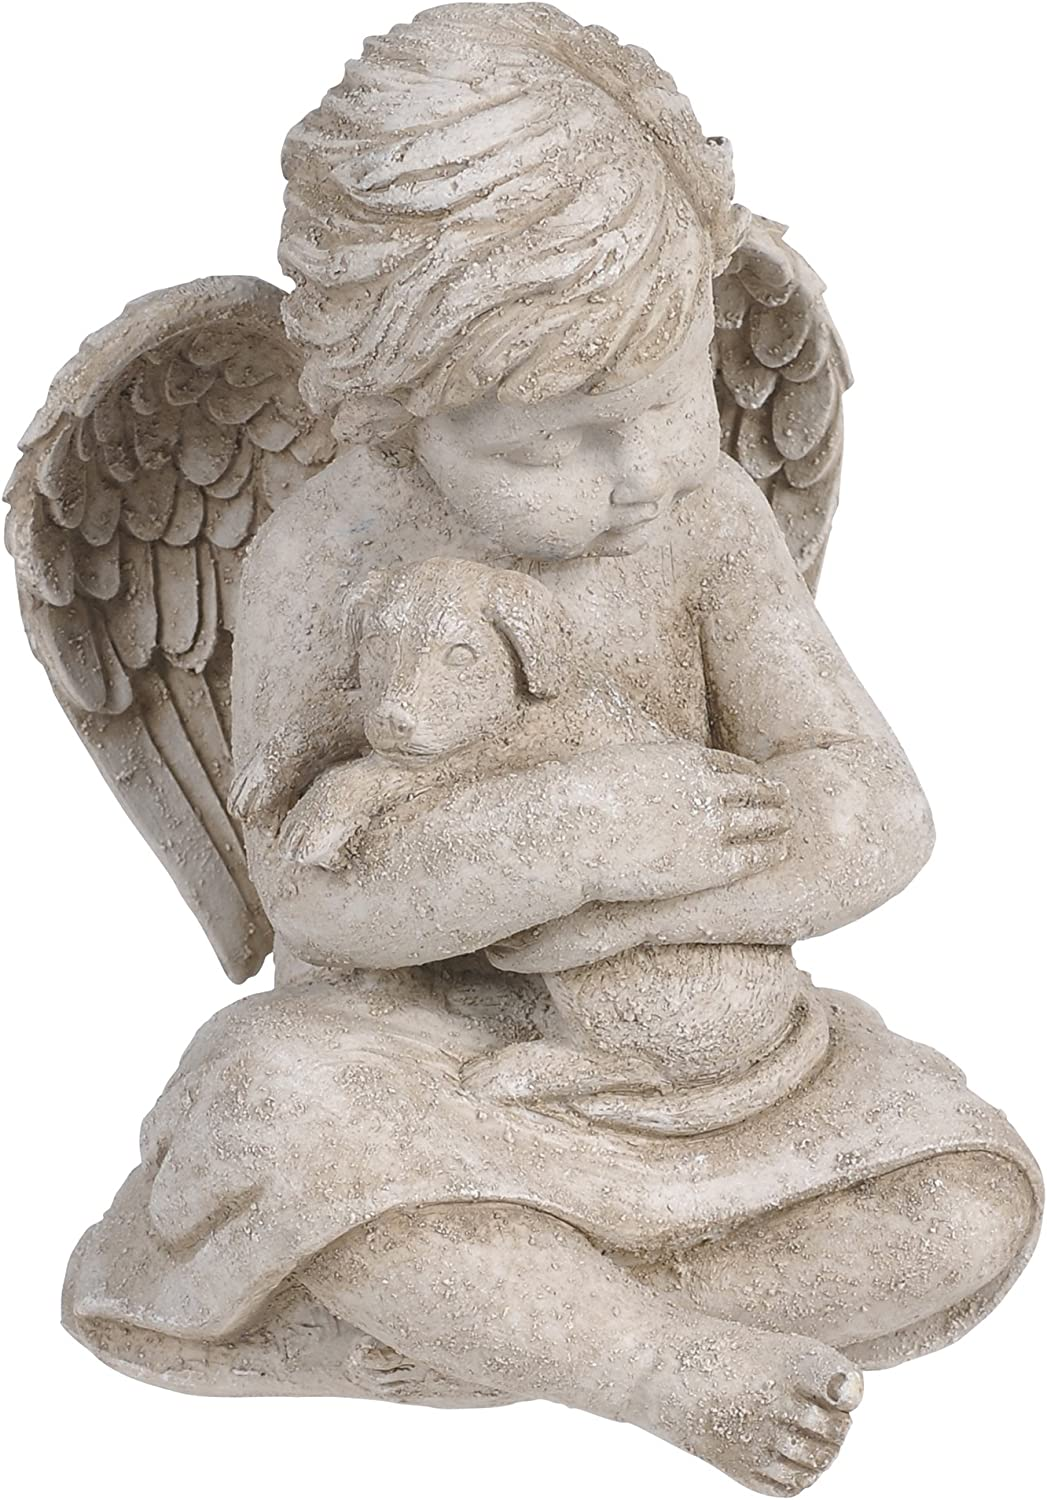 Grasslands Road Cherub with Dog, 7-Inch, Gift Boxed : Outdoor Statues : Garden & Outdoor